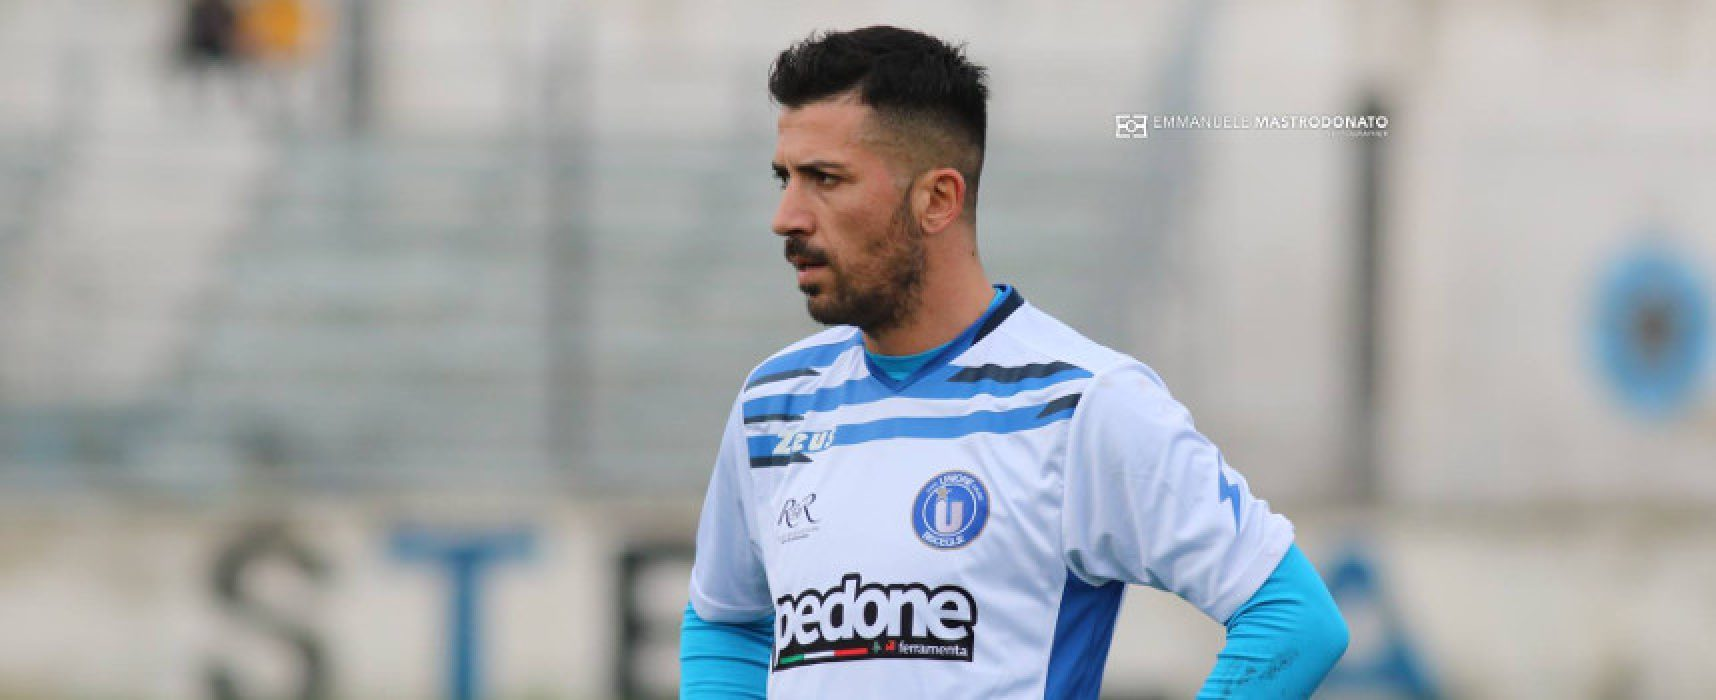 Unione Calcio-Otranto 0-0 / VIDEO HIGHLIGHTS